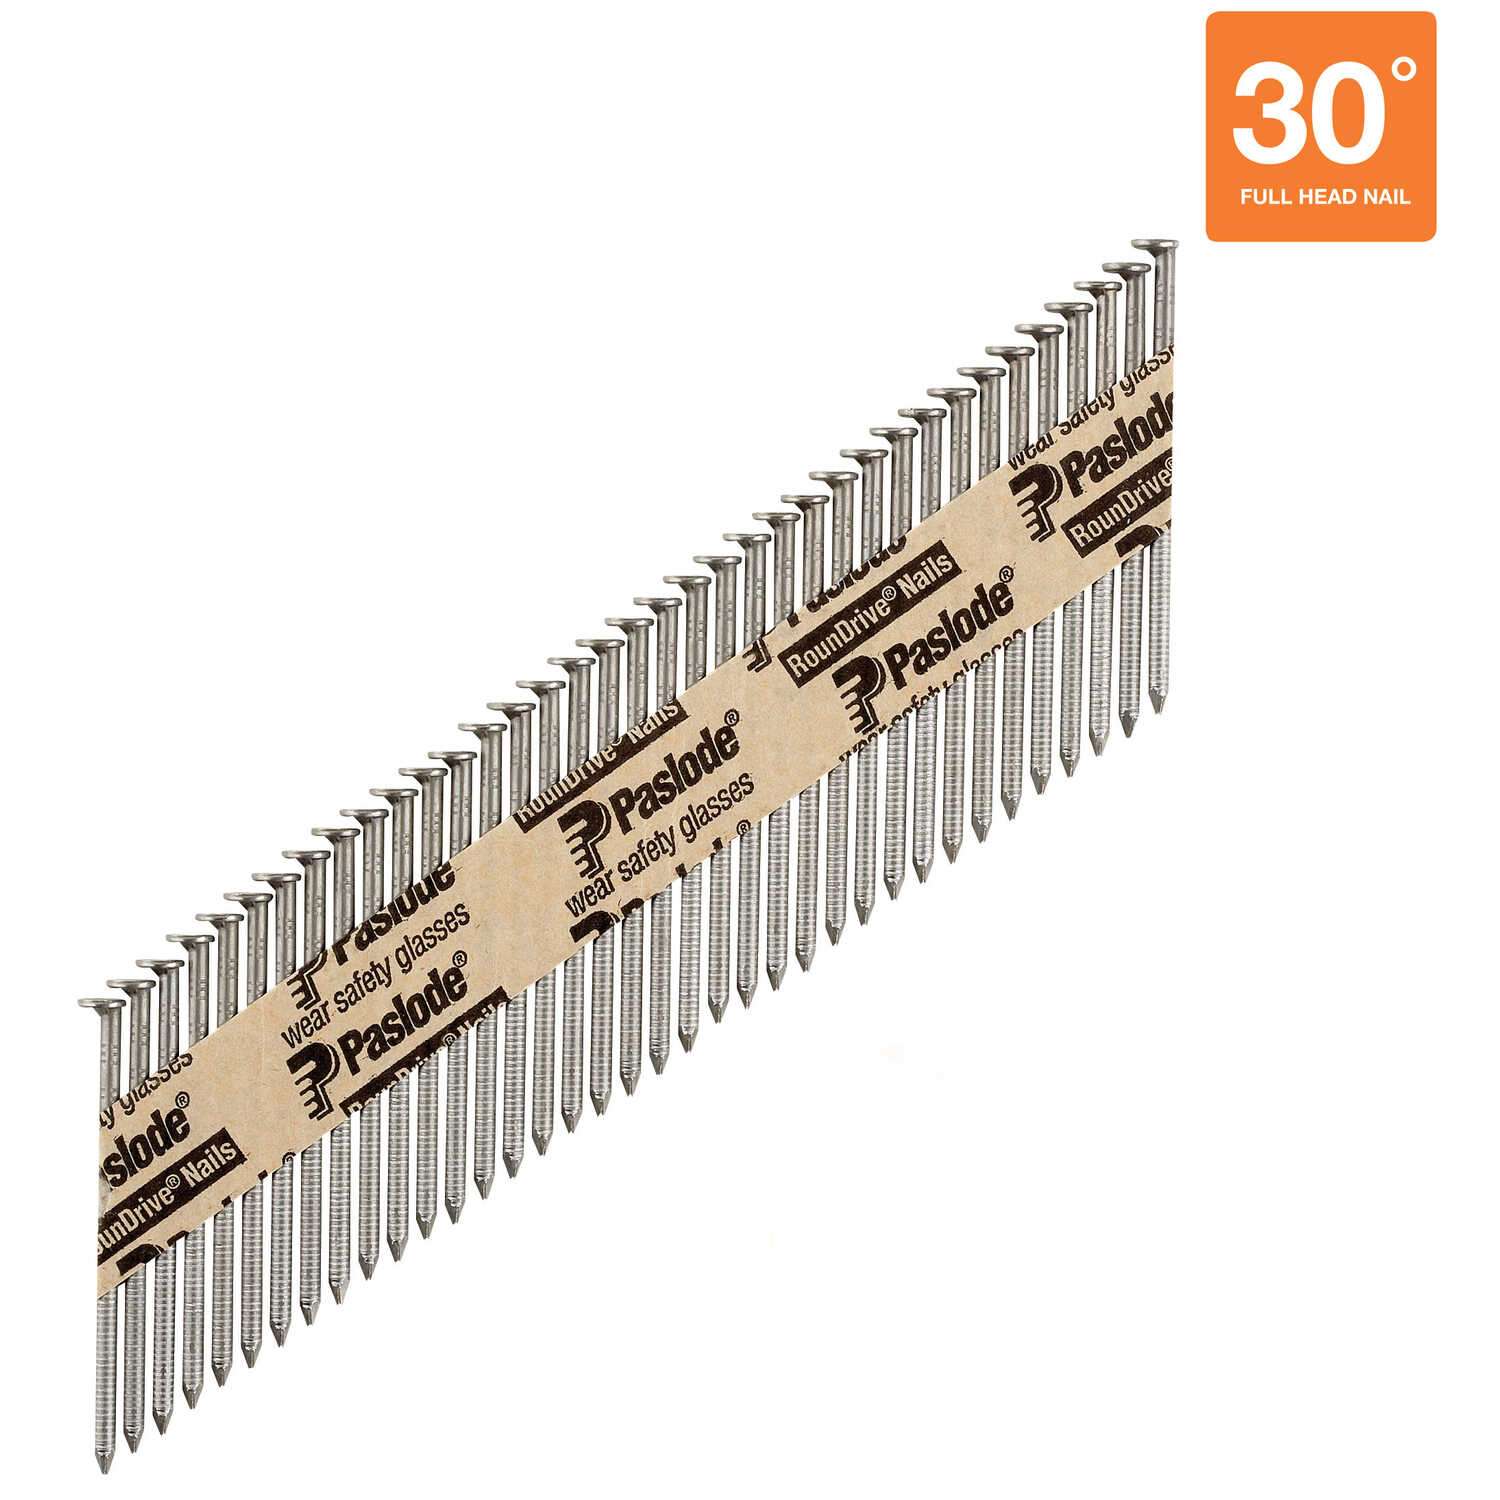 Paslode  RounDrive  2-3/8 in. 16 Ga. Straight Strip  Framing Nails  30 deg. Ring Shank  2000 pk